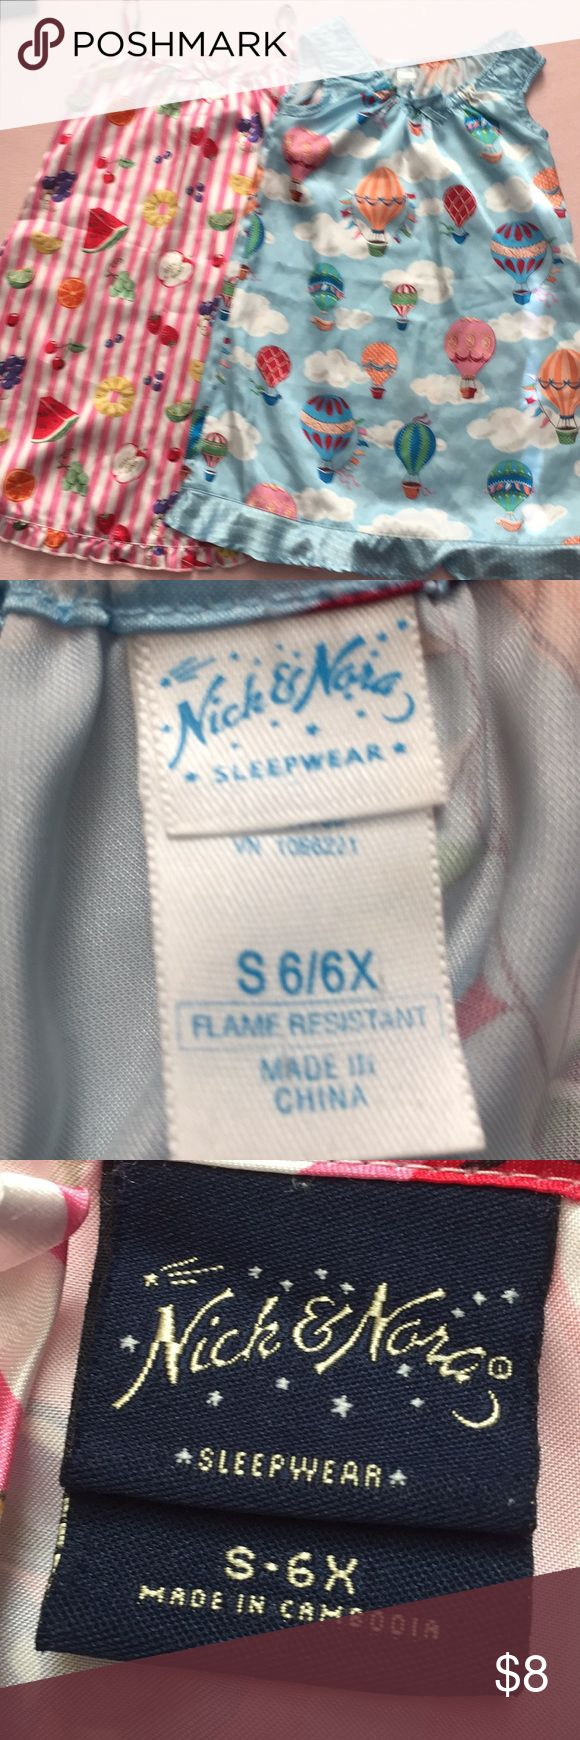 Nick and Nora nightgowns Two Nick and Nora nightgowns, size 6-6X. Nick and Nora Pajamas Nightgowns